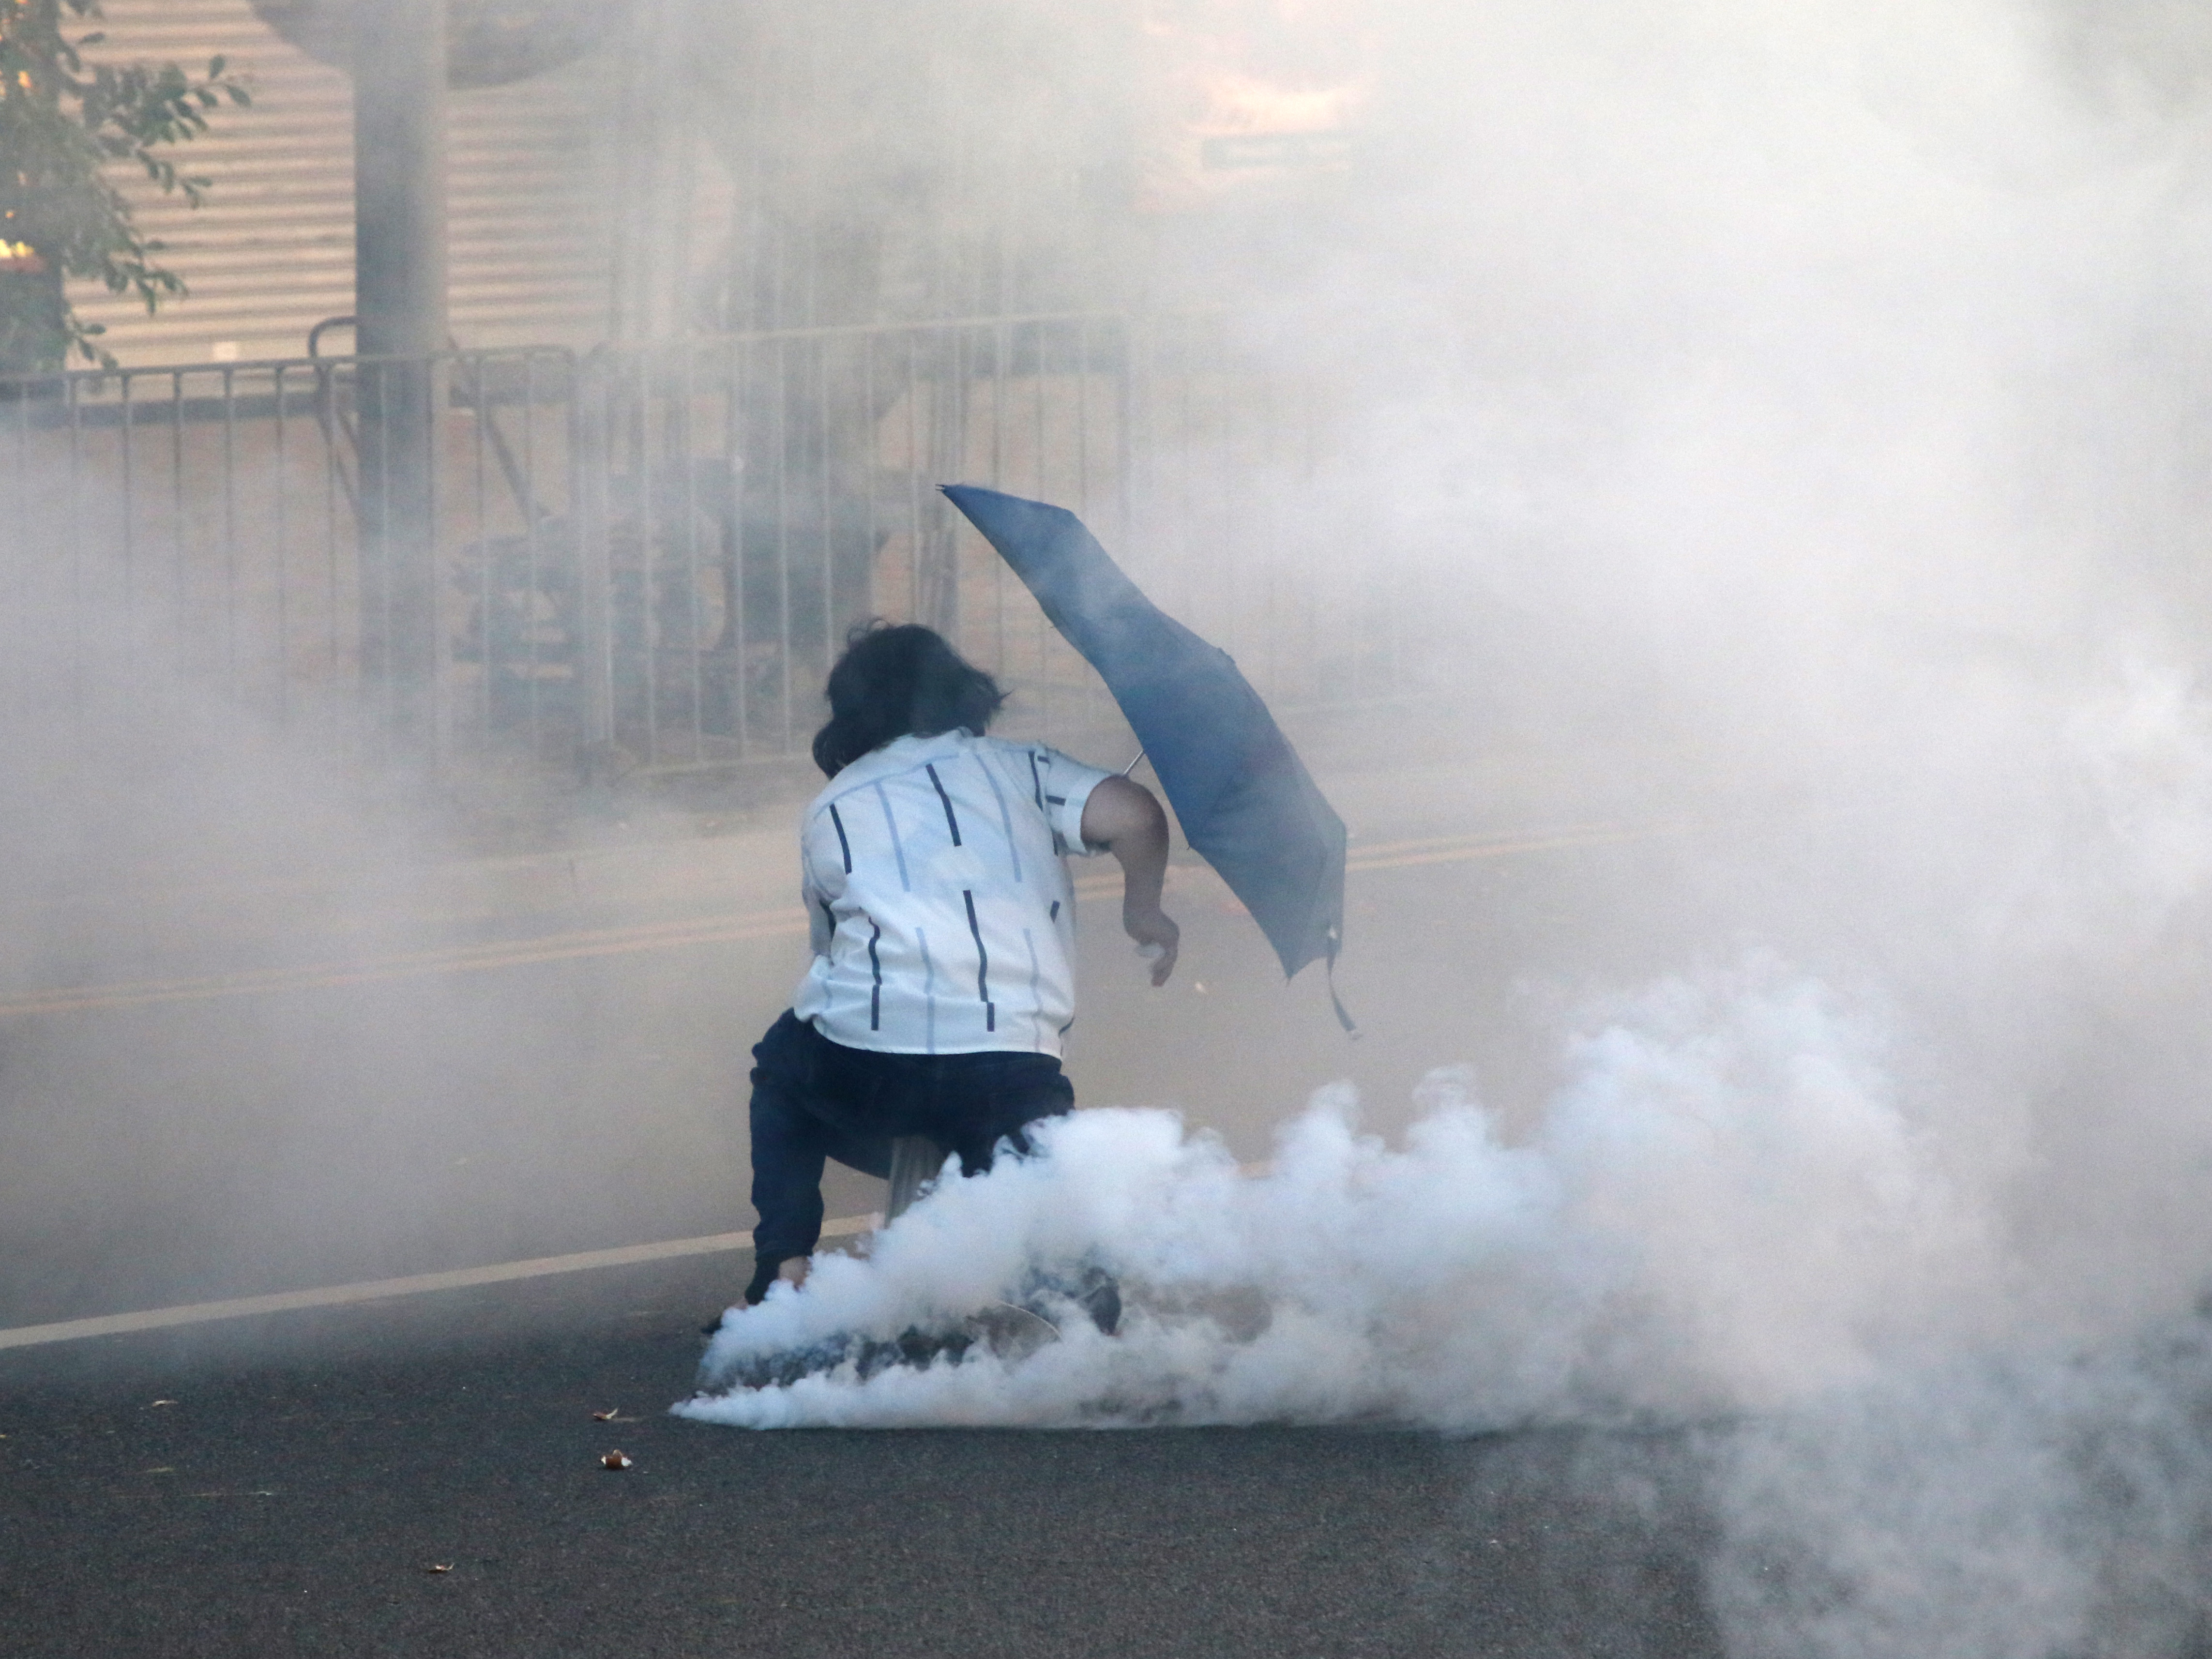 A woman try to negiotate with police collapse in the tear gas during the confrontation in Hong Kong Protests/